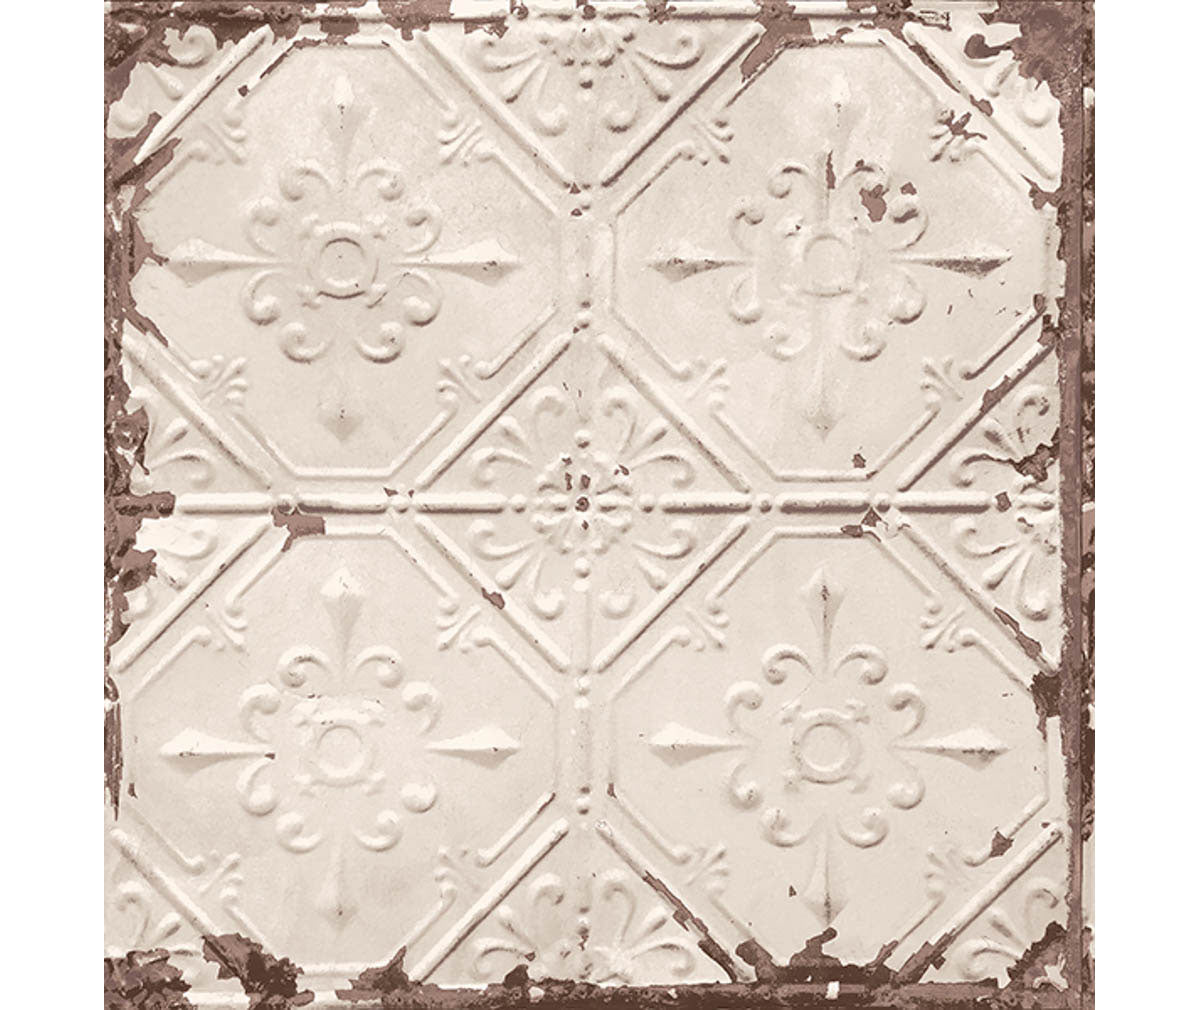 Tin Ceiling Beige Distressed Tiles Wallpaper available at Barrydowne Paint